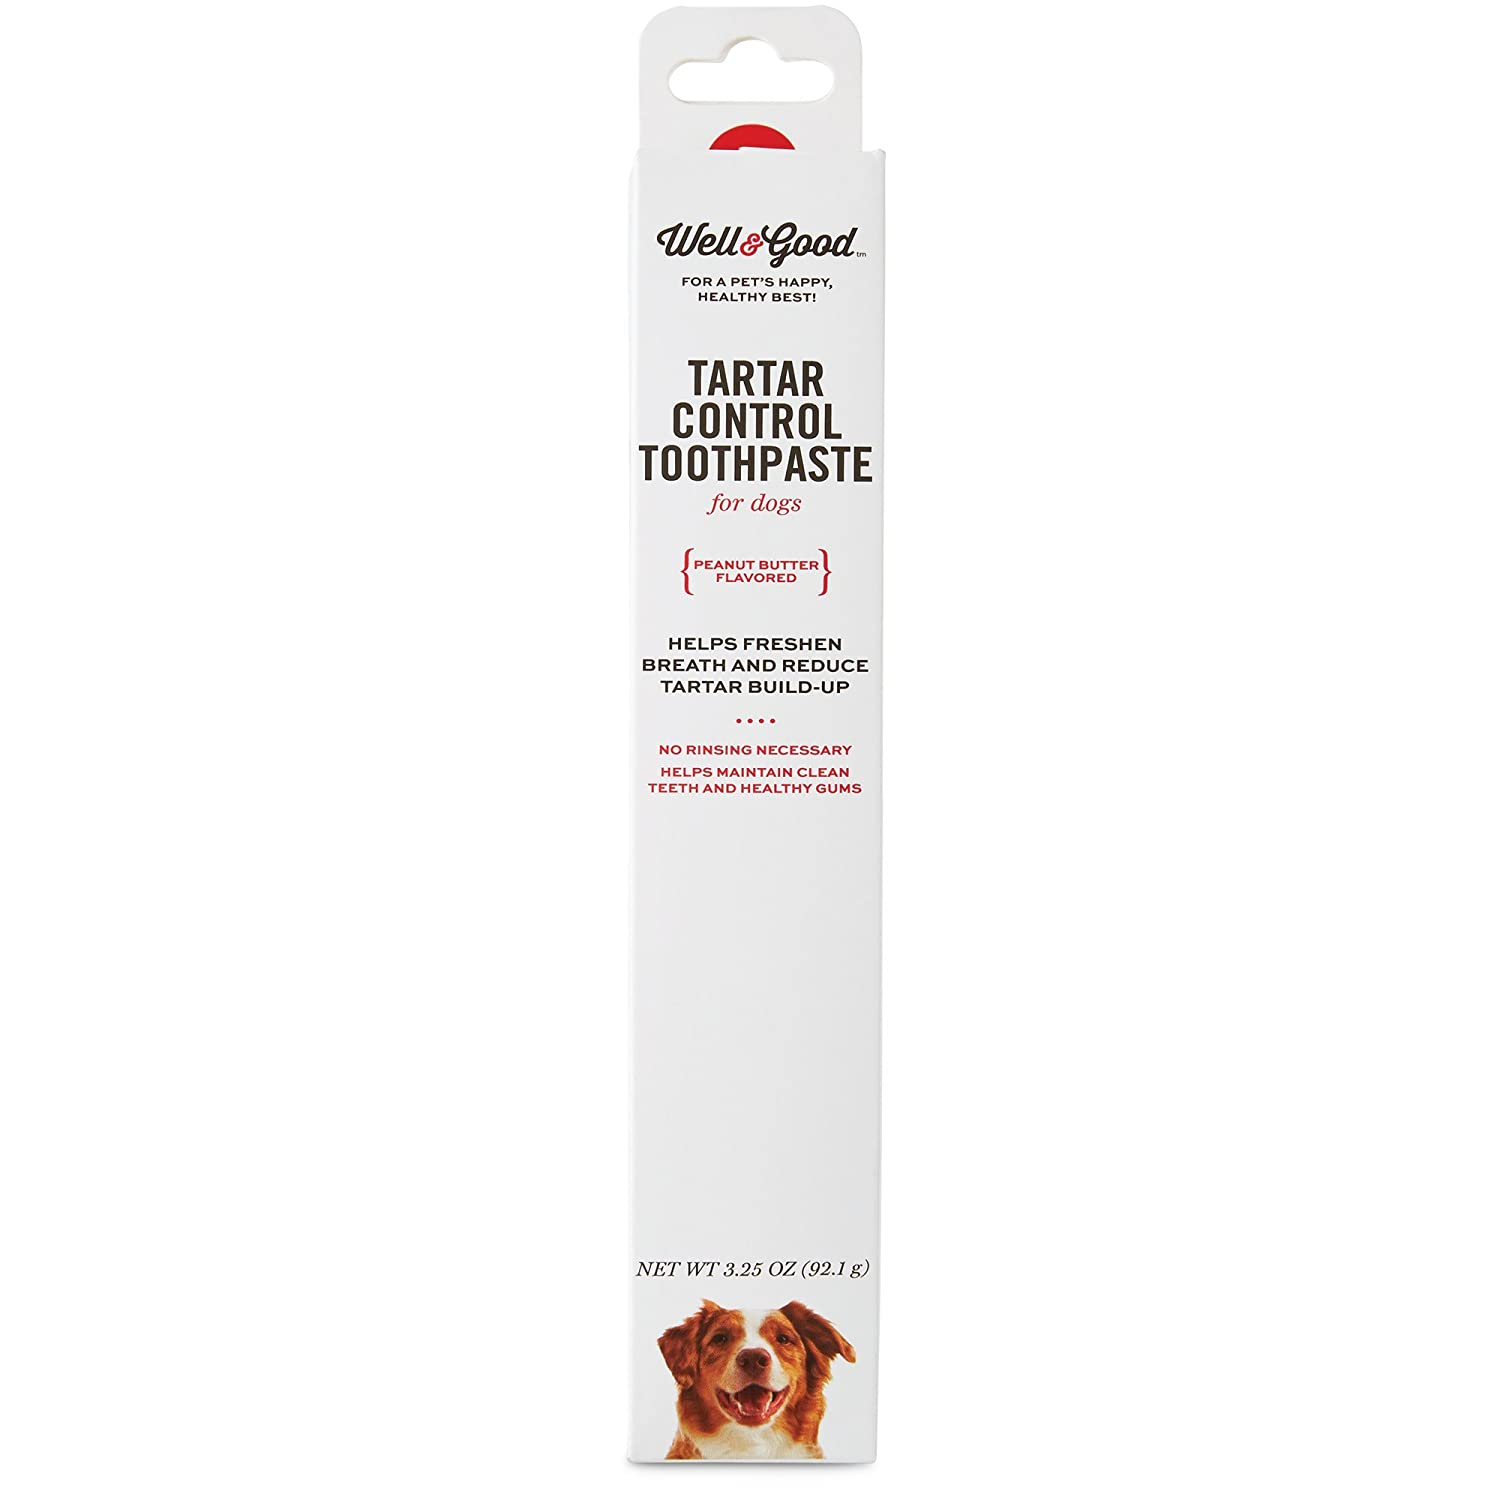 Well & Good Tartar Control Toothpaste for Dogs, Peanut Butter Flavor